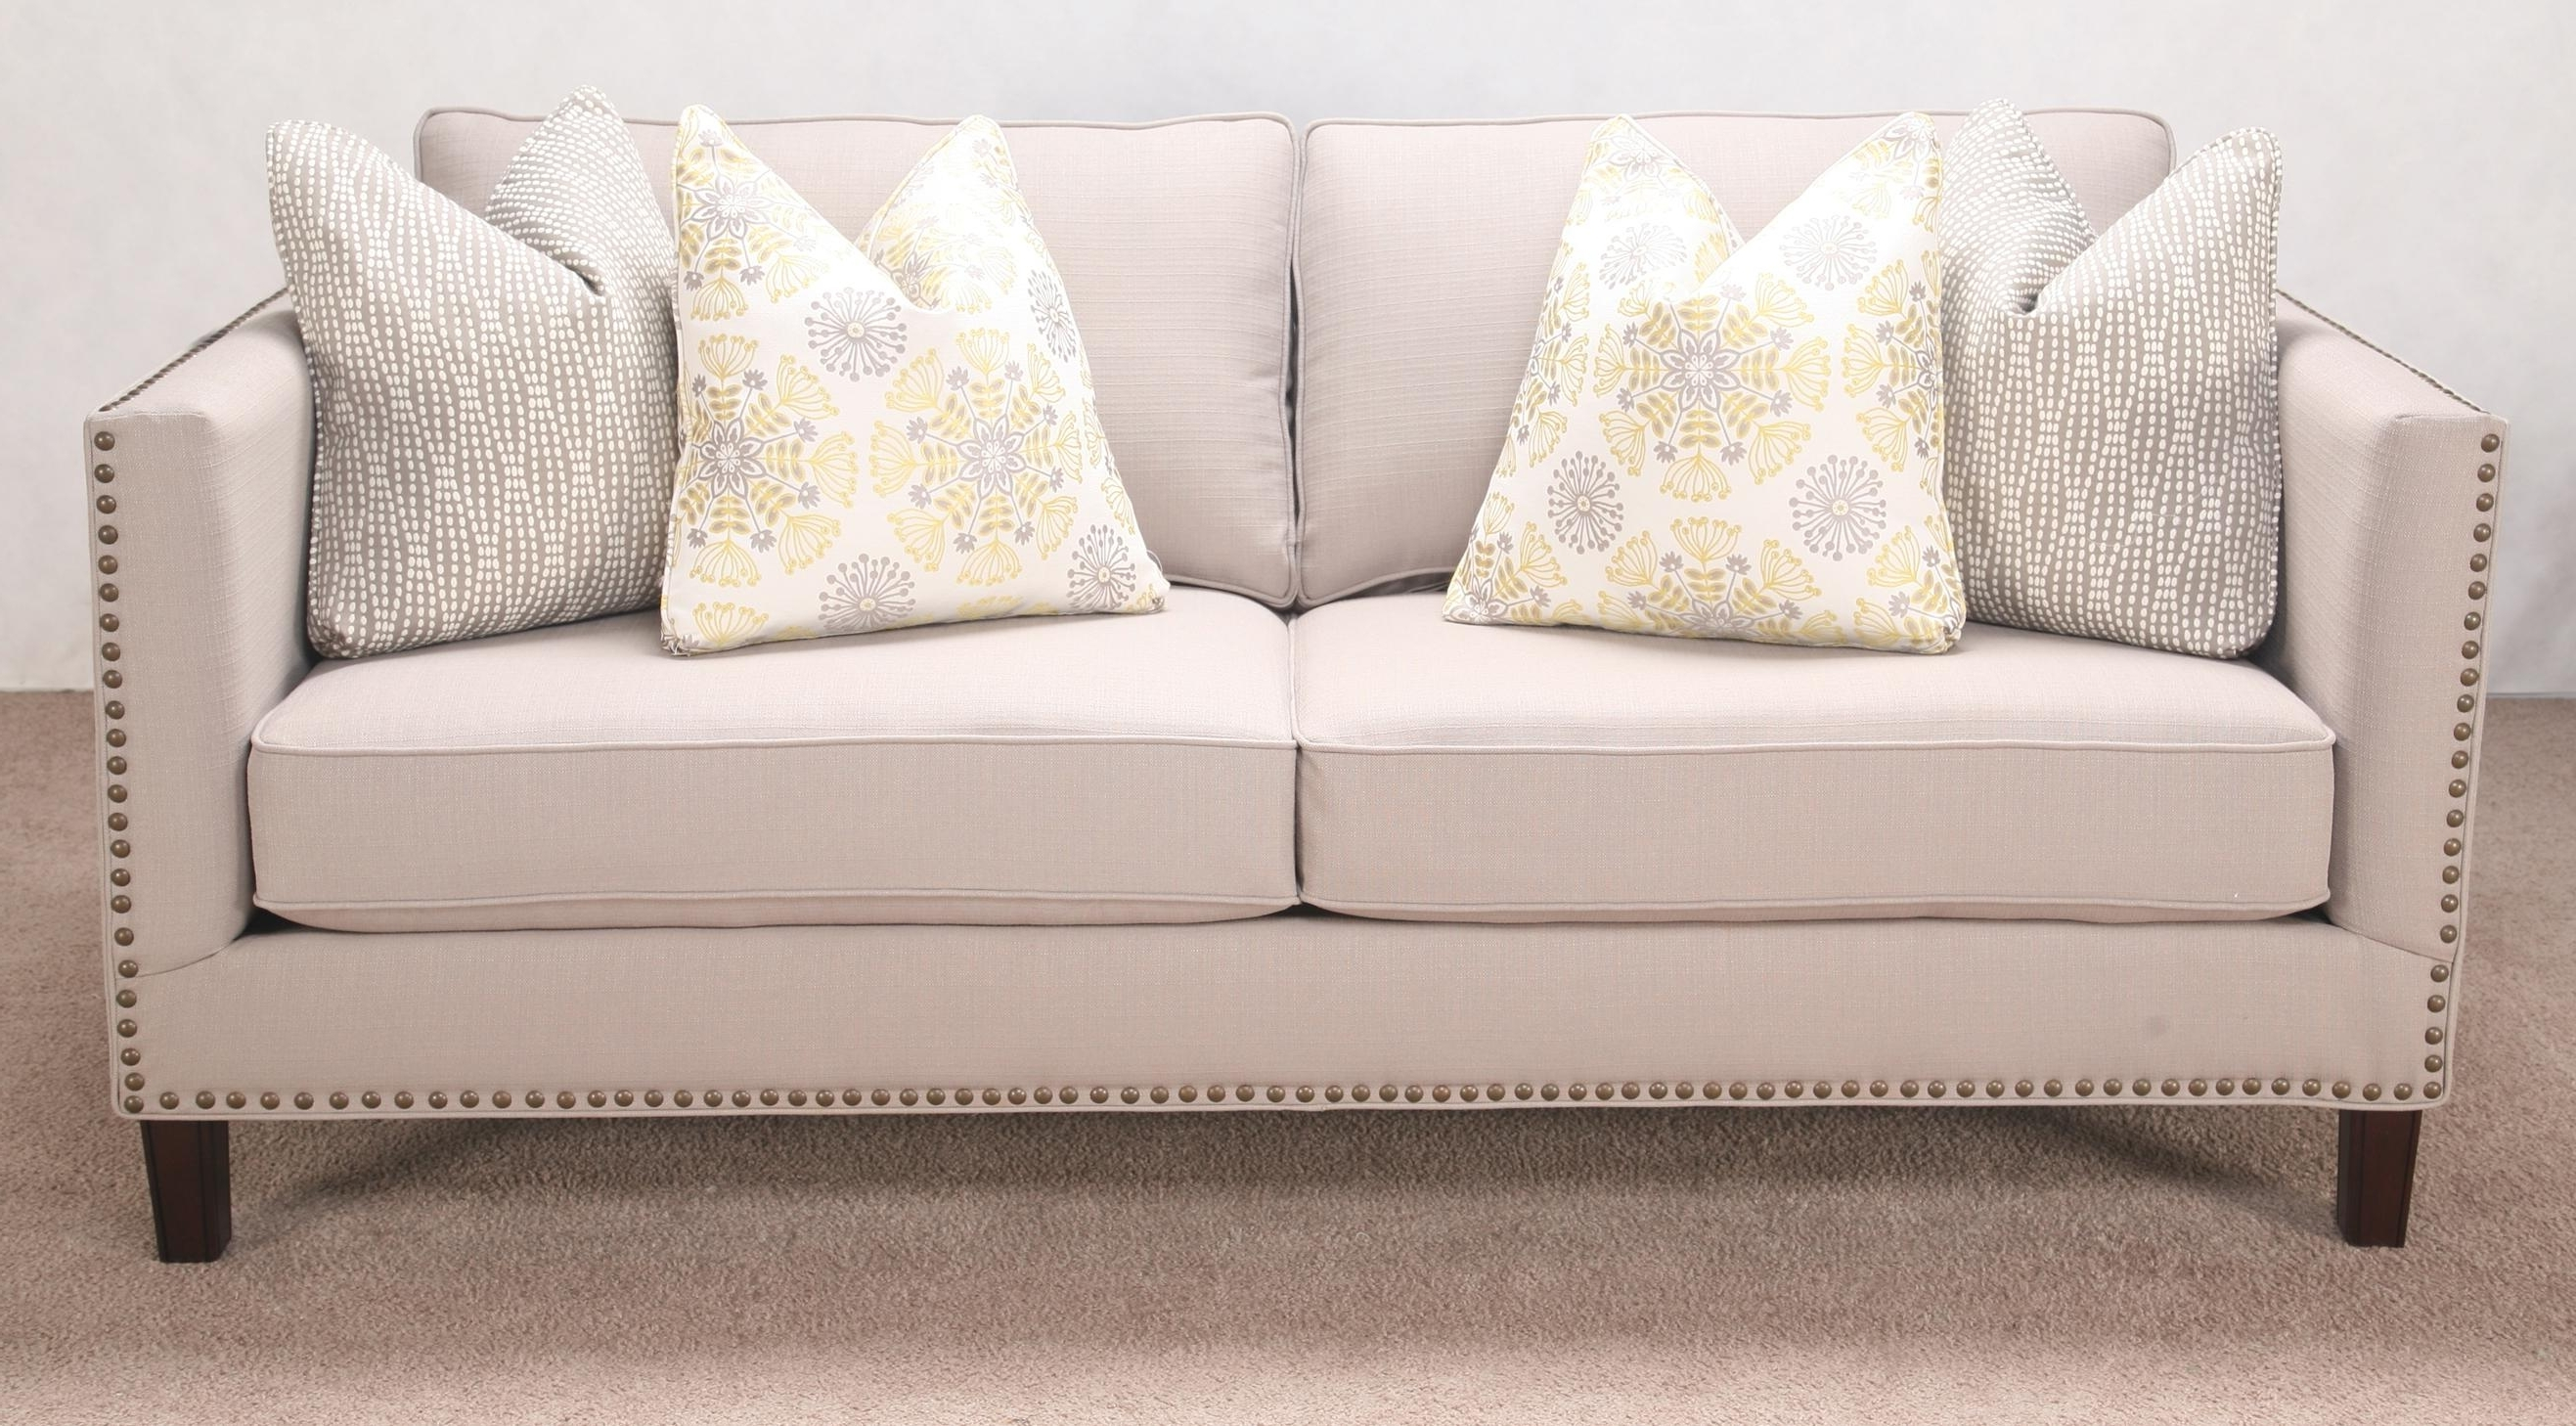 Popular Sectional Sofas With Nailheads Regarding Unique Sectional Sofa With Nailhead Trim 26 About Remodel Sofa (View 8 of 20)